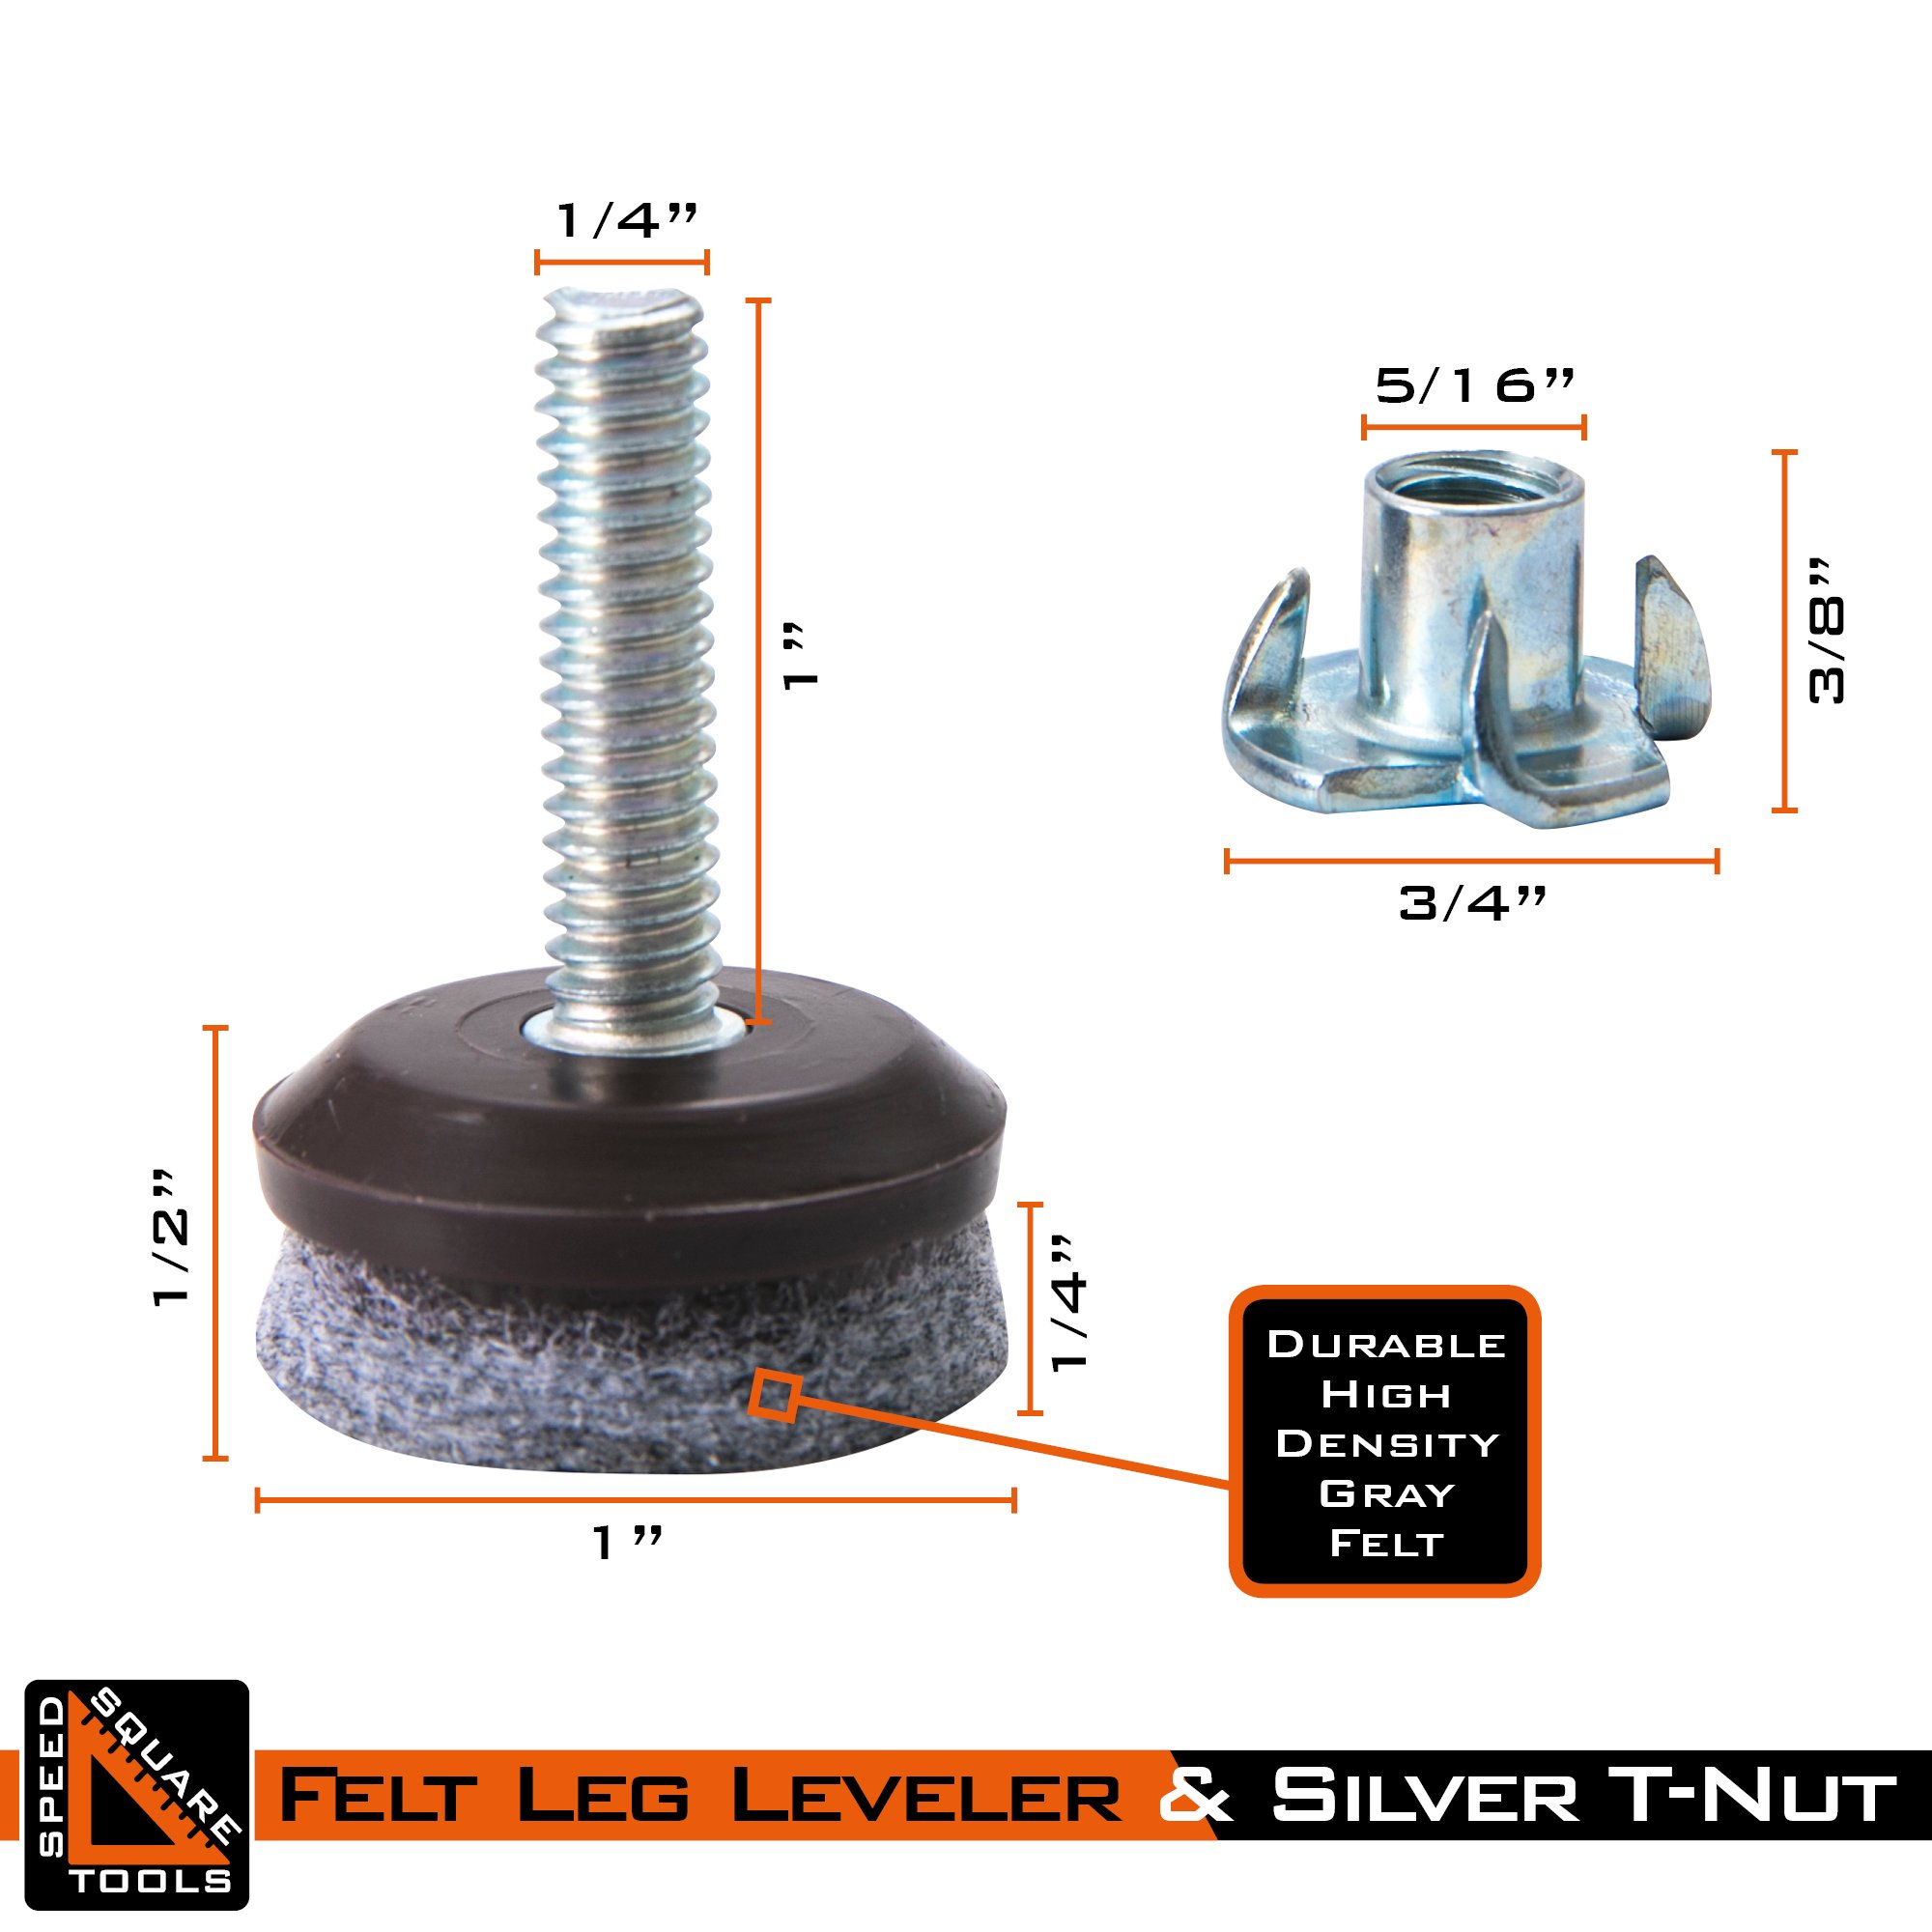 Furniture Levelers | Heavy Duty & Integrated High-Density Felt | Fully Threaded Adjustable Height 0.5'' to 1.25'' | Great Glide Pads for Home, Office, DIY, Restaurant, Café | 12 Pack by SpeedSquare Tools (Image #2)